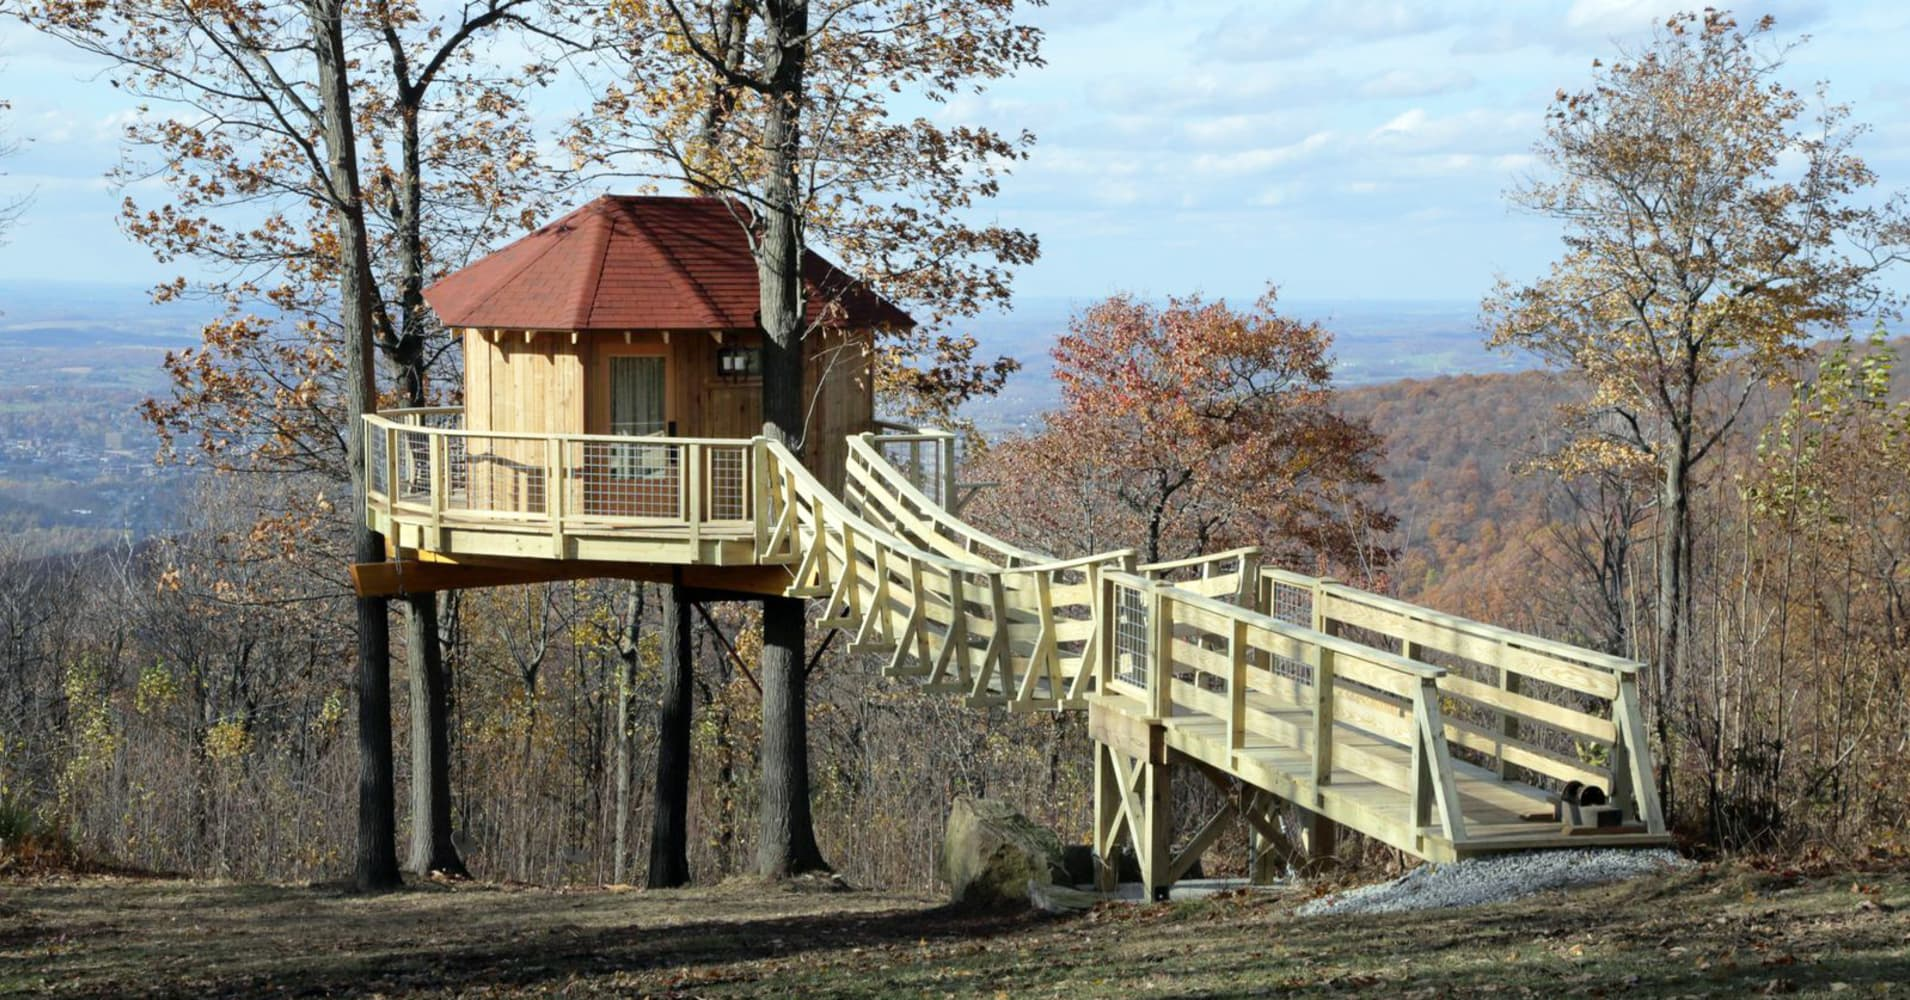 treehouses not just for kids anymore - Treehouse Masters Tree Houses Inside